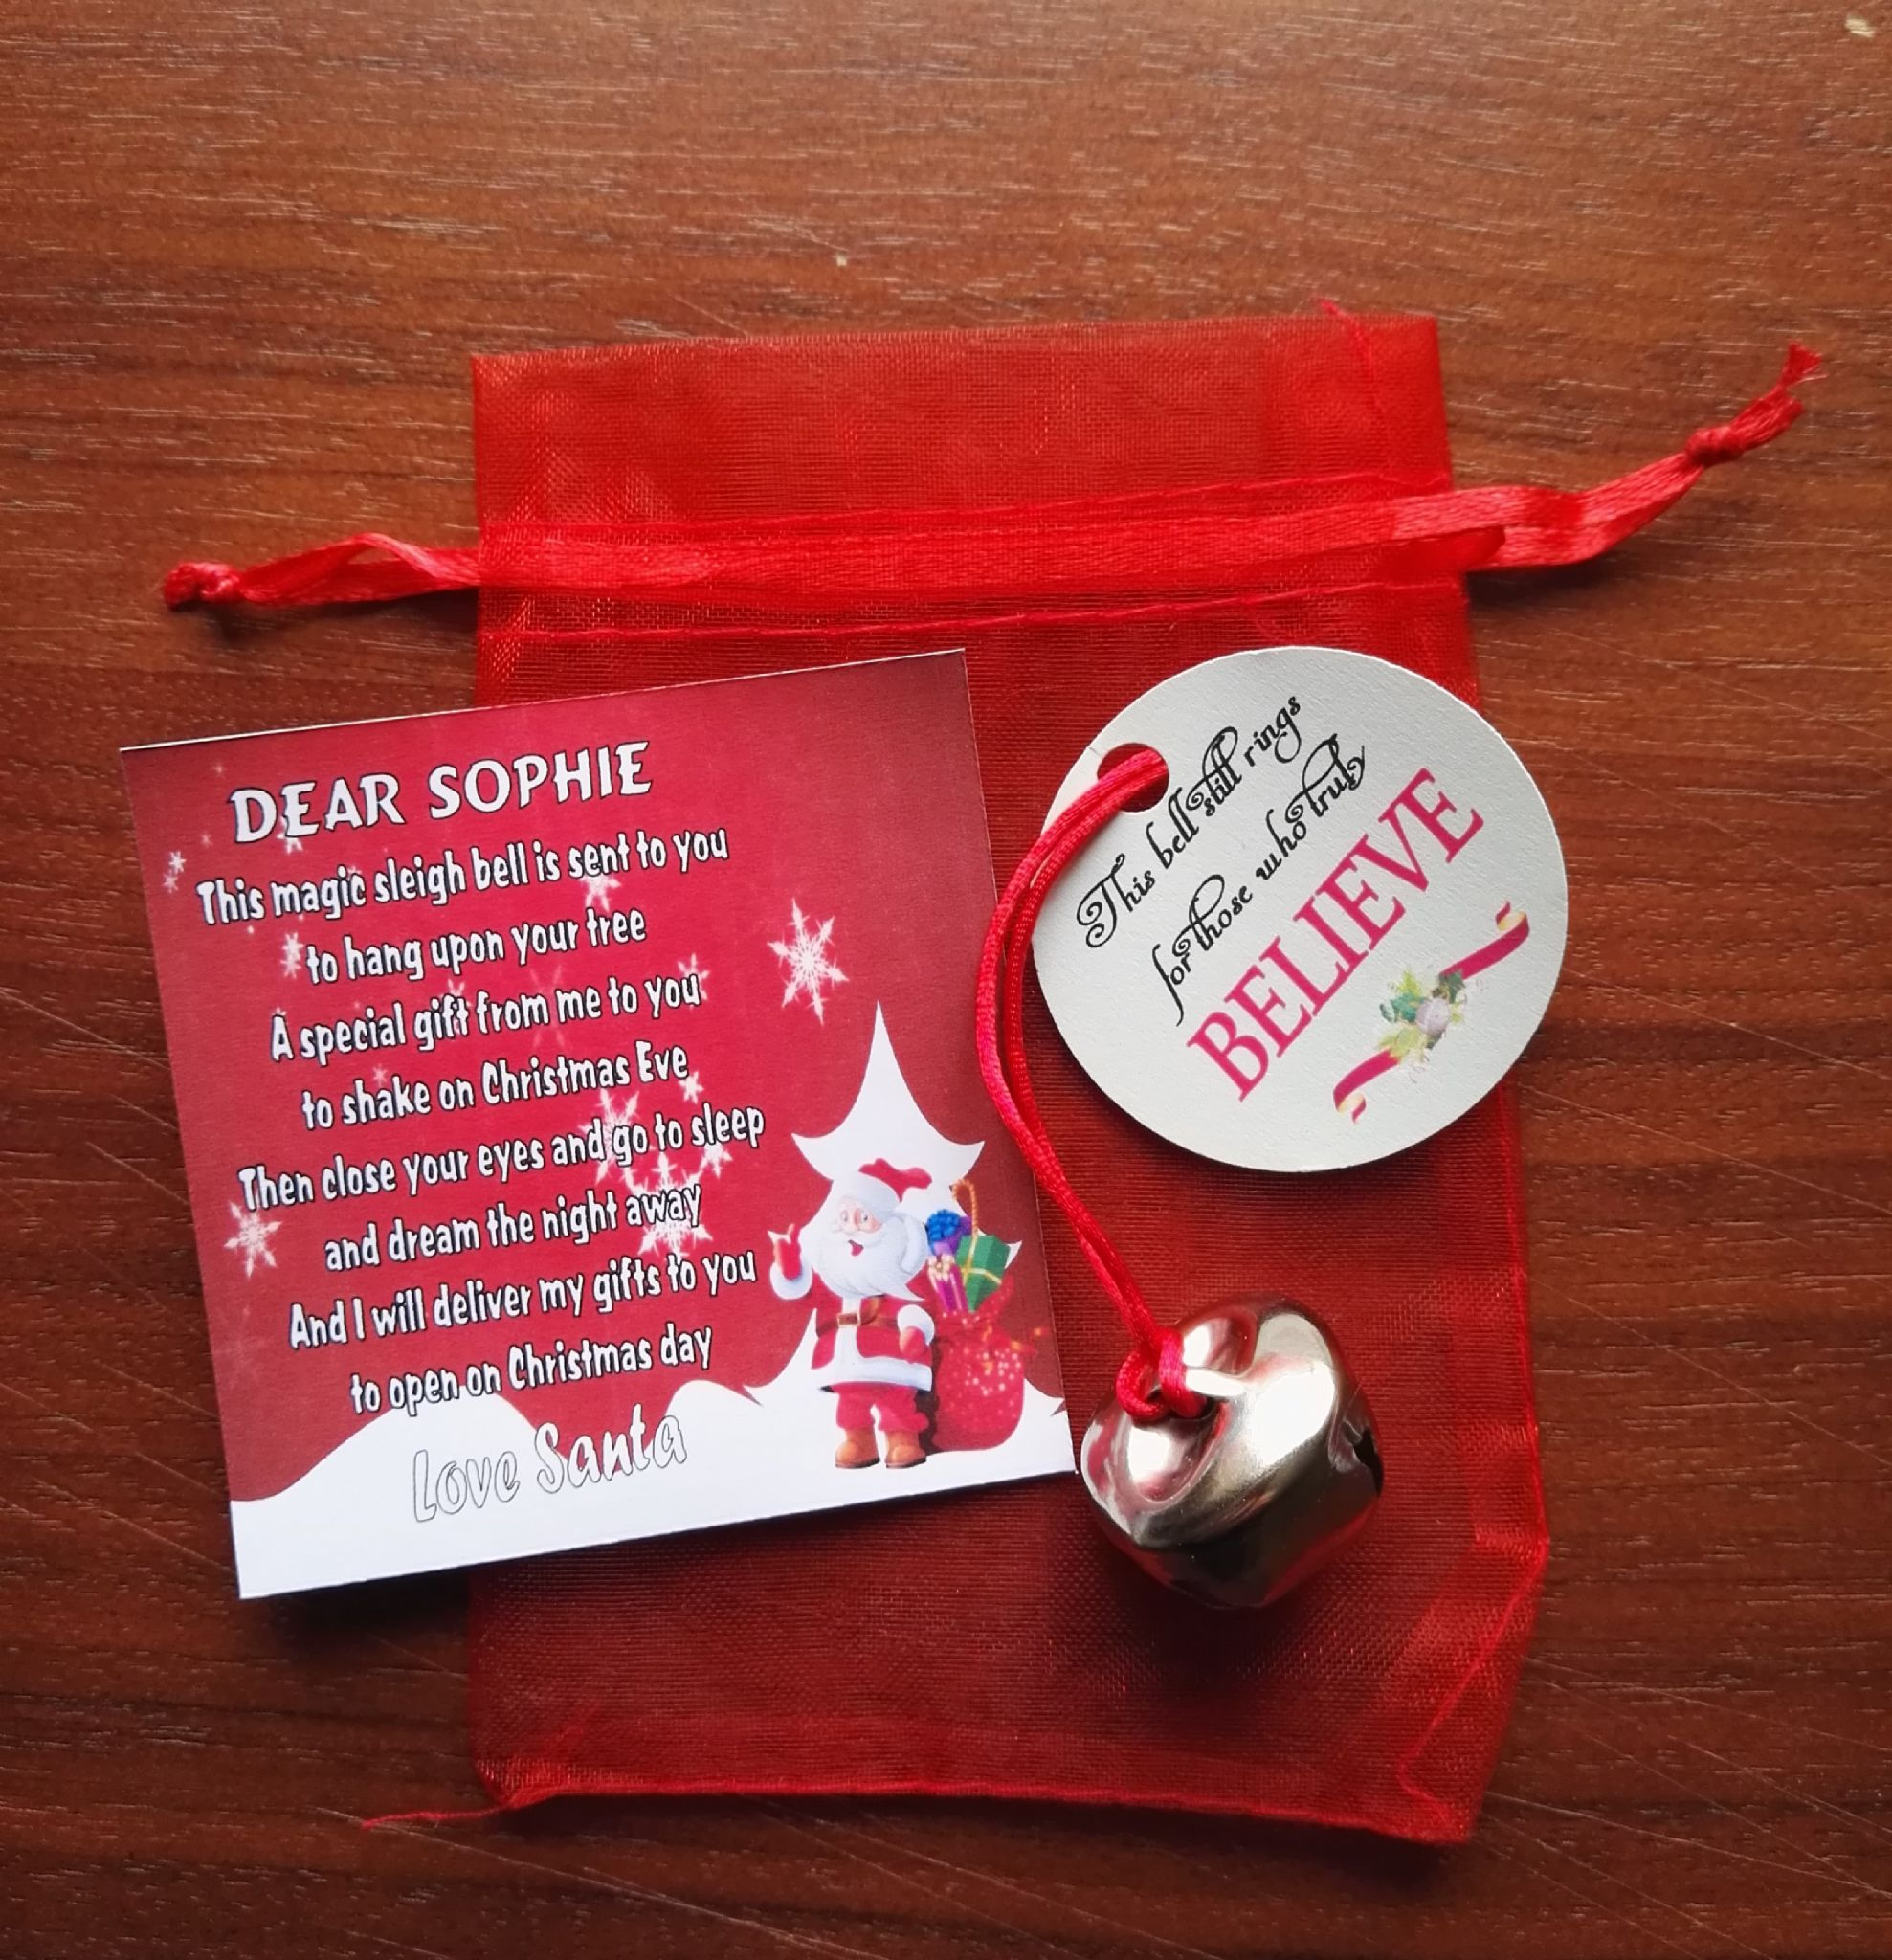 Polar Express Inspired Sleigh Bell Gift From Santa With